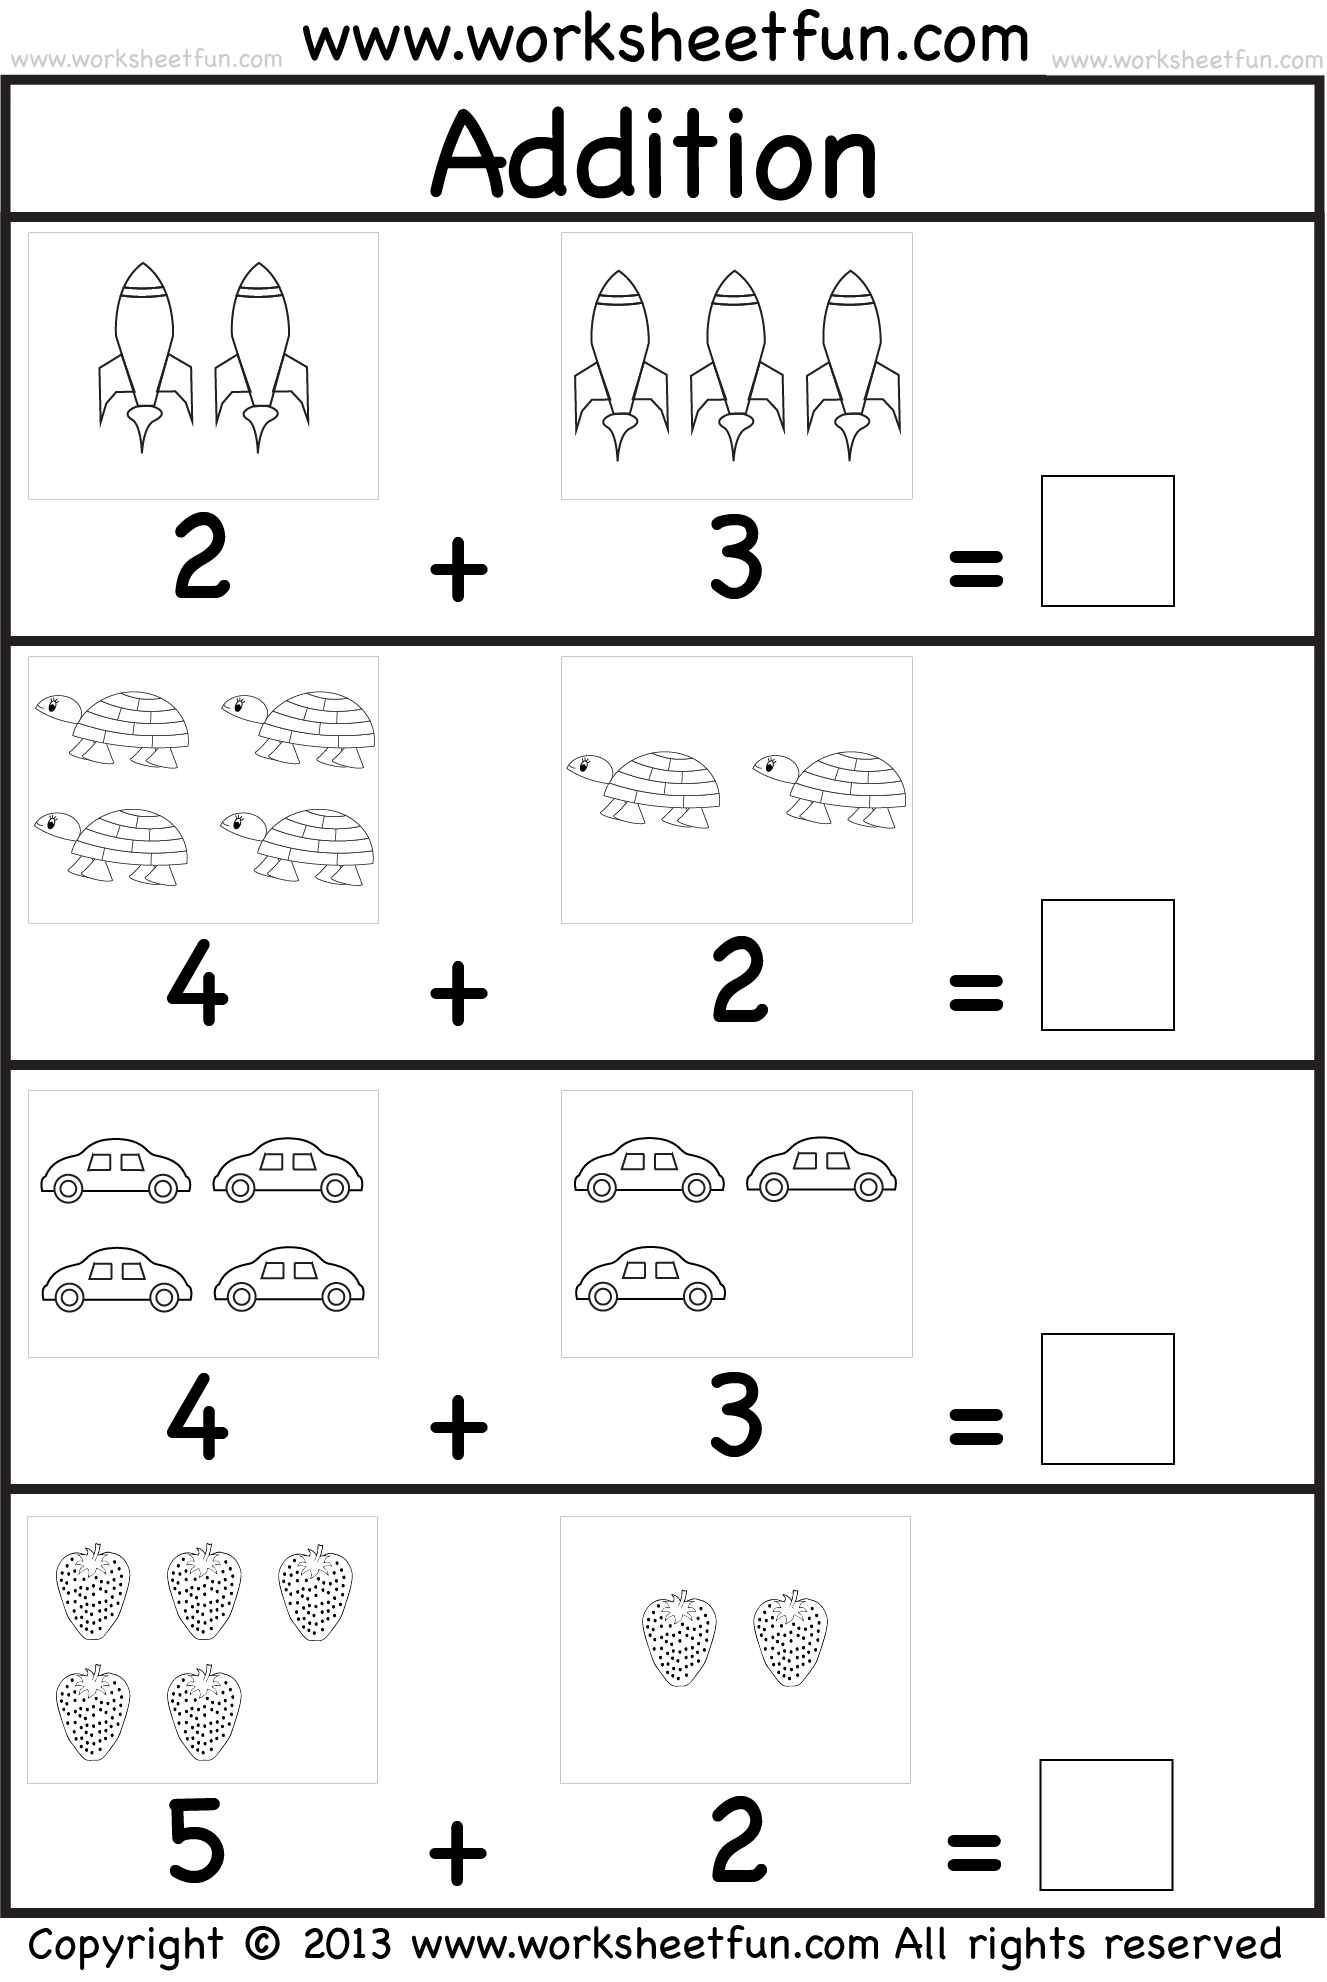 Worksheets Kindergarten Math Worksheets Addition And Subtraction addition worksheet this site has great free worksheets for everything from abcs to math